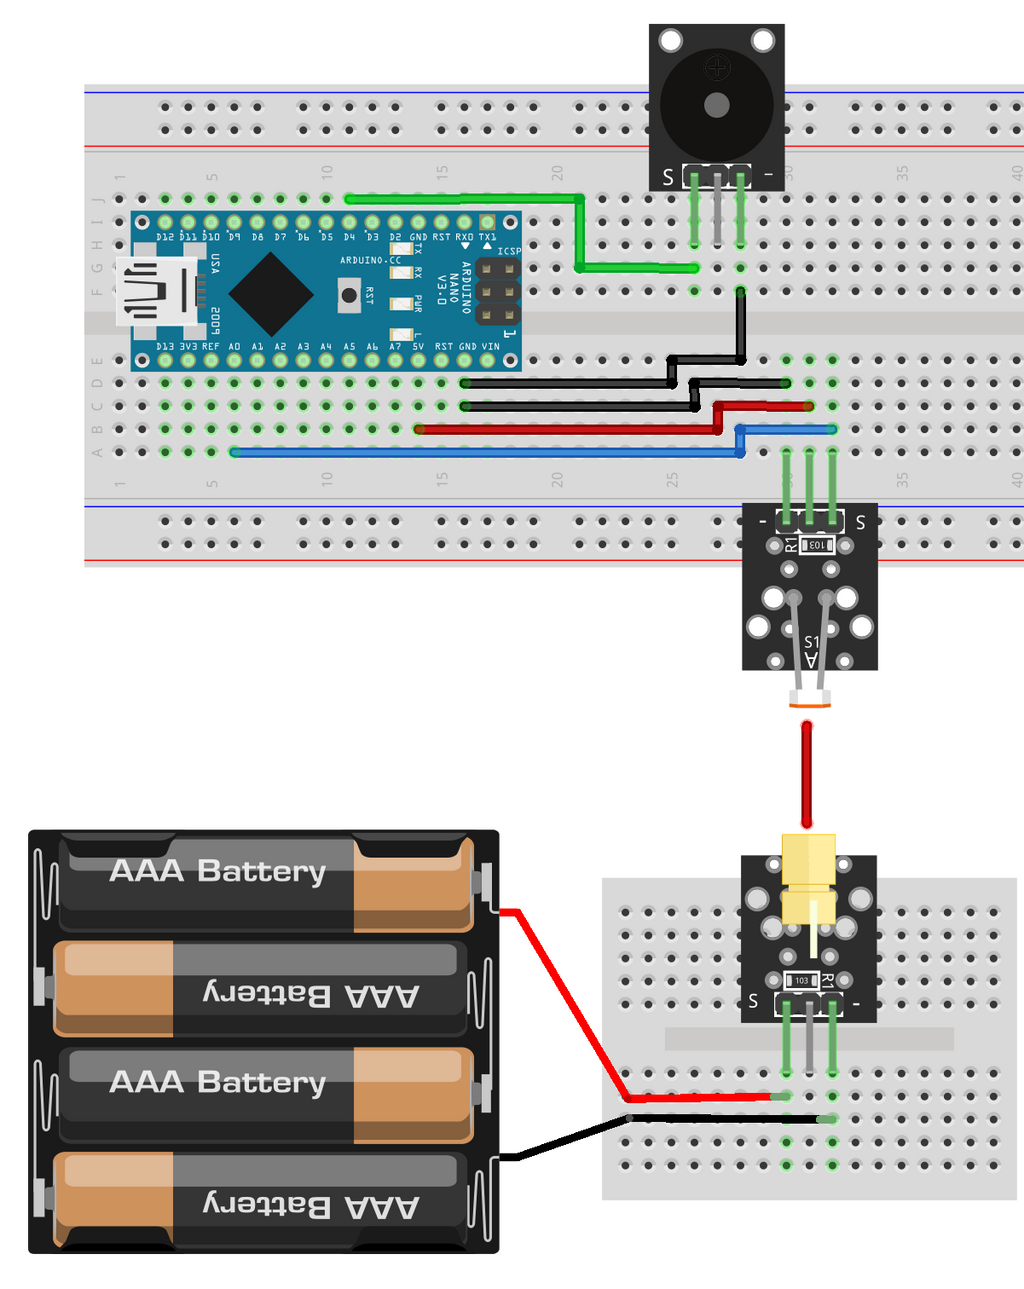 Alert System with Photo Resistor, Buzzer and Laser (Concept)